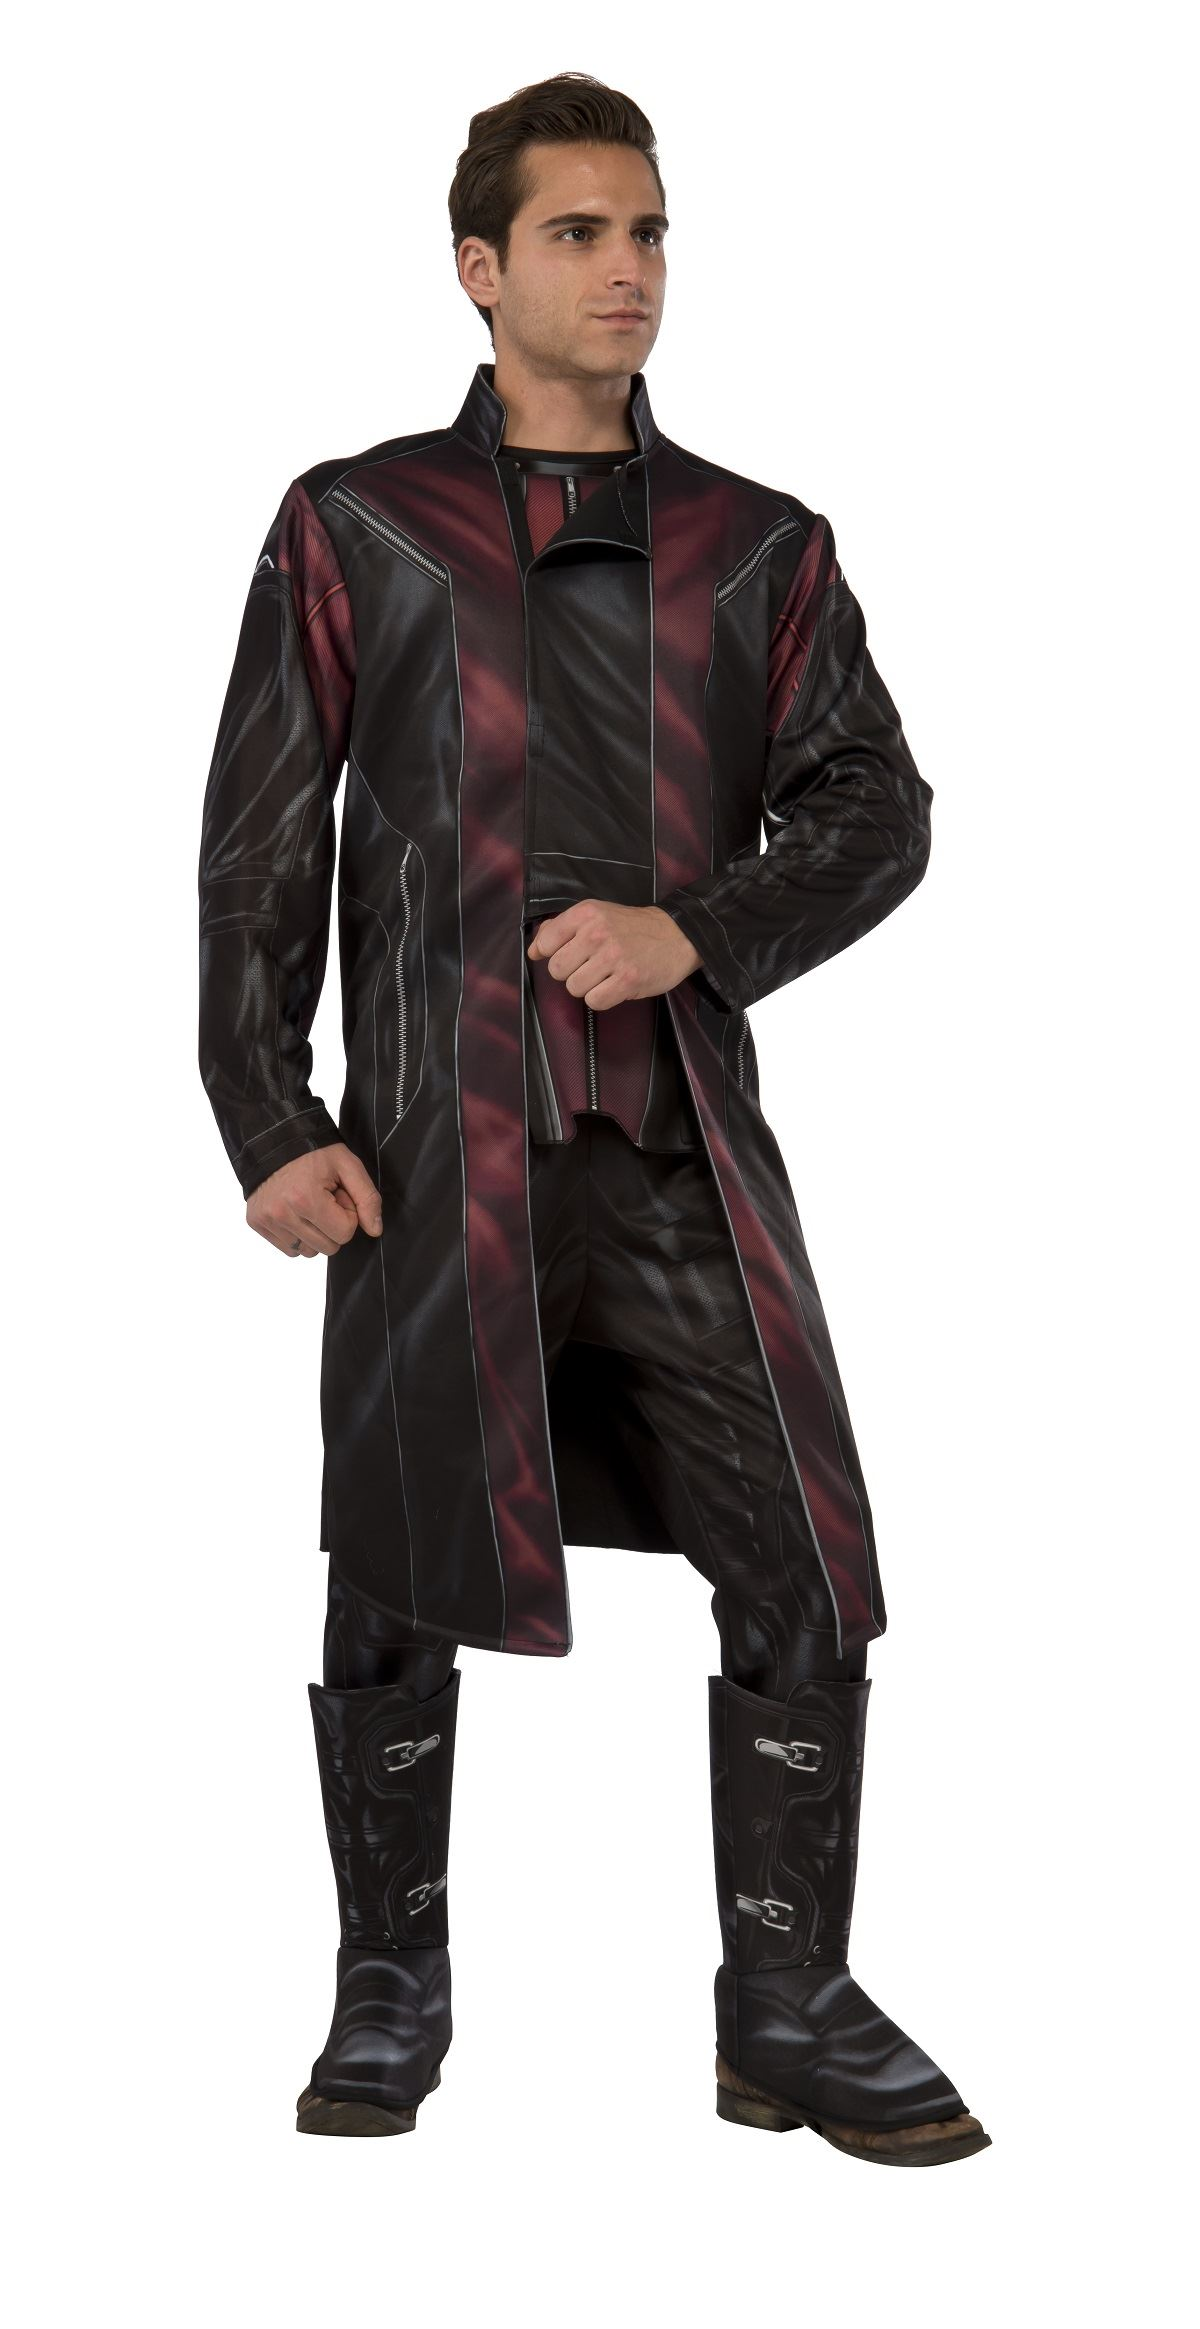 Adult Hawkeye Avengers Men Costume | $48.99 | The Costume Land